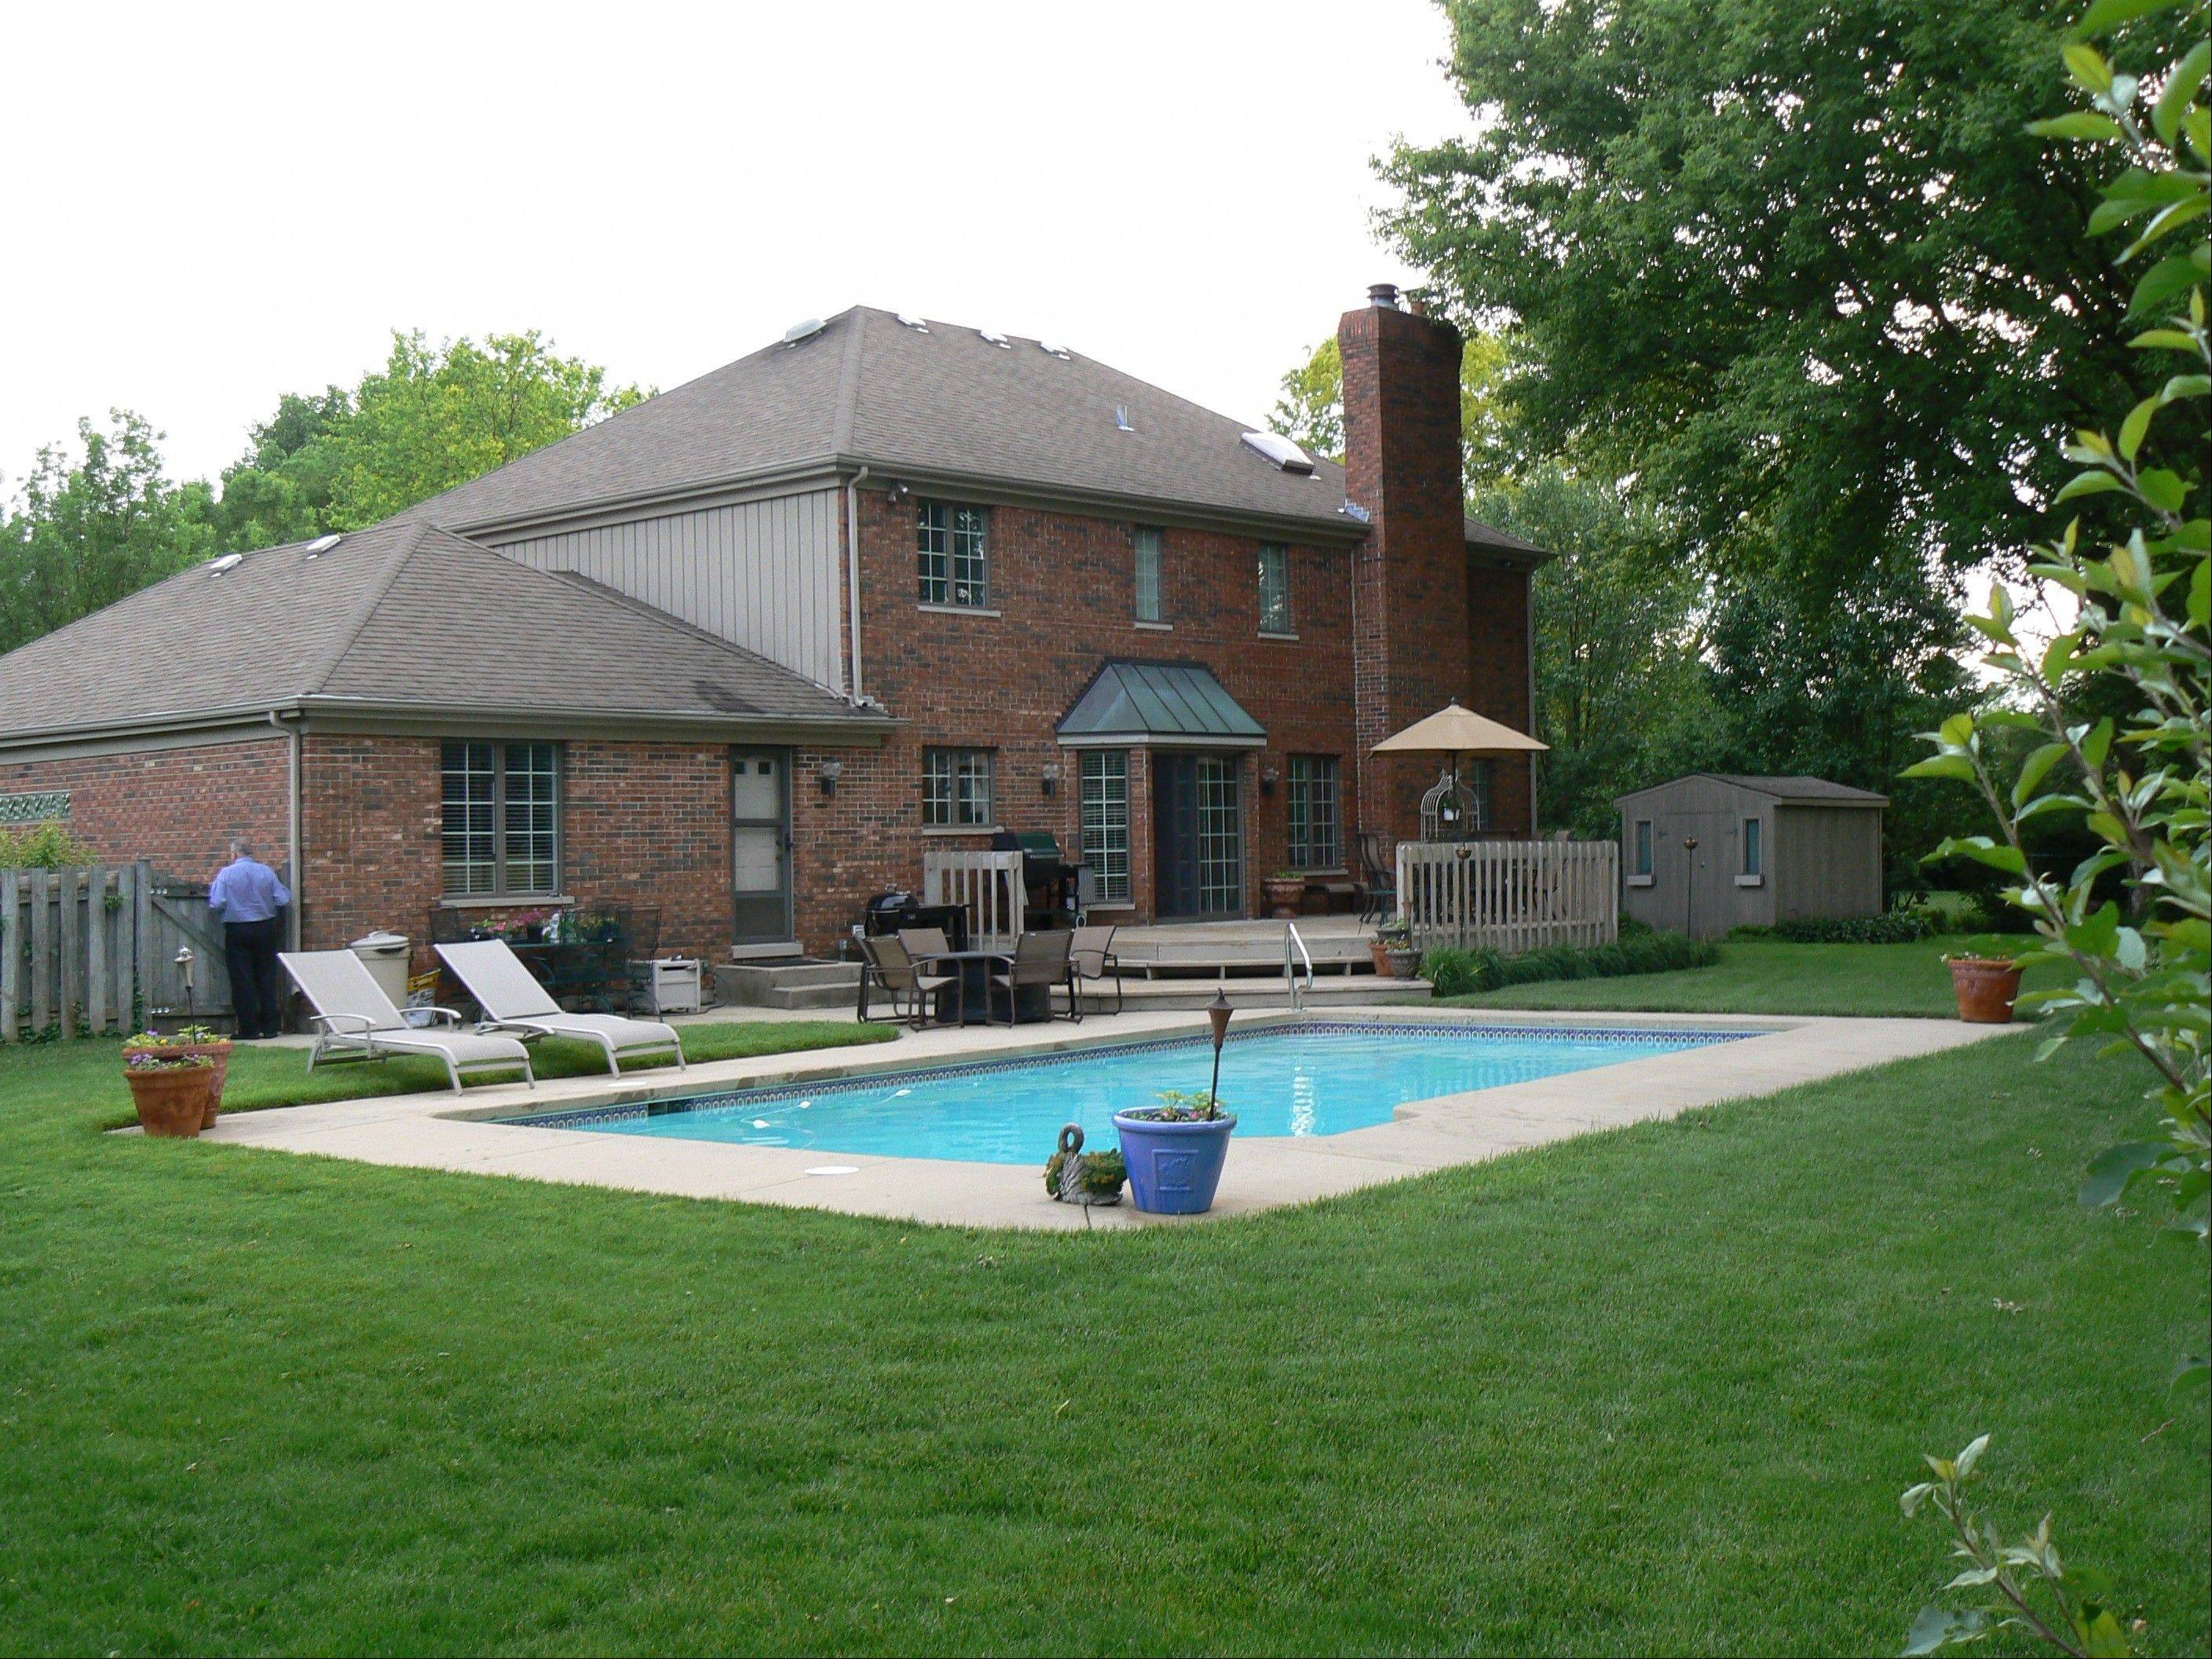 The home's swimming pool makes for an inviting backyard.